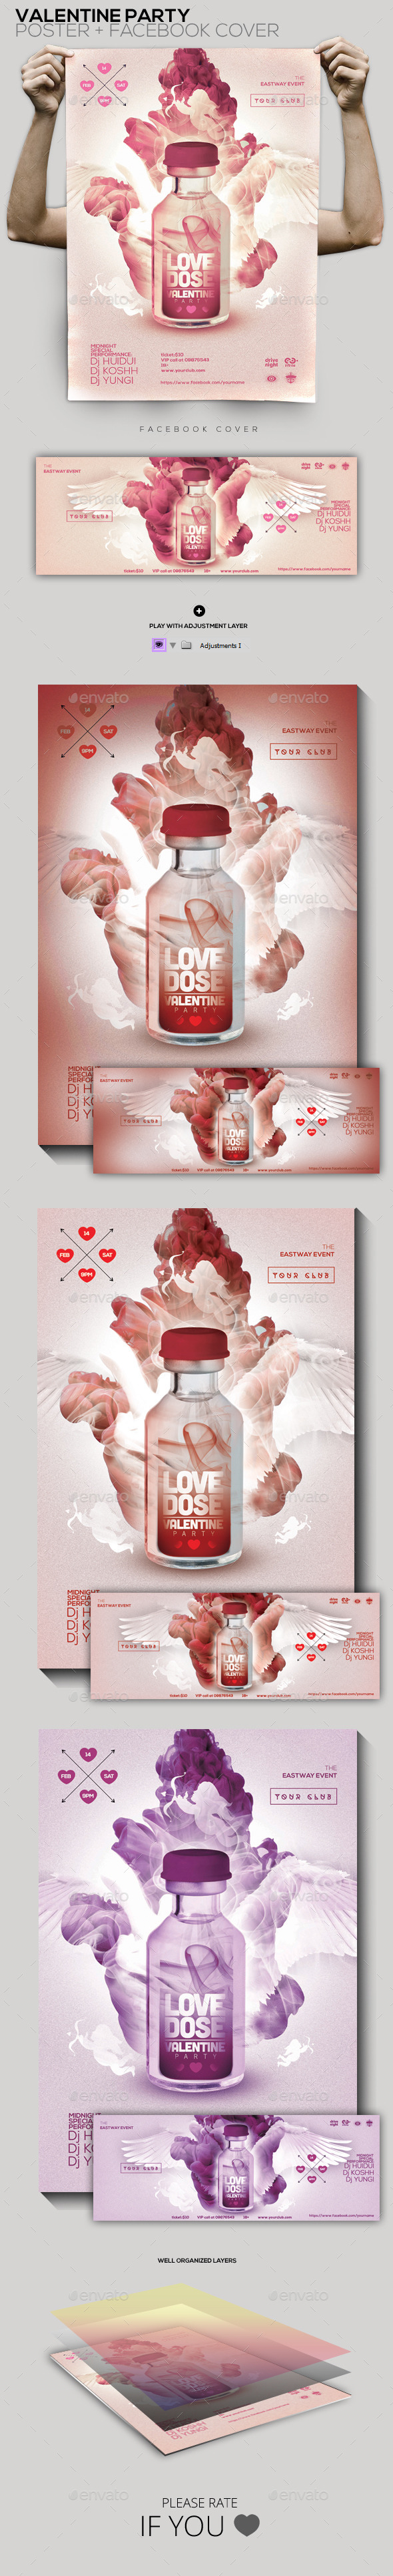 Love Dose Valentine Party Flyer/Poster/Facebook Co - Clubs & Parties Events